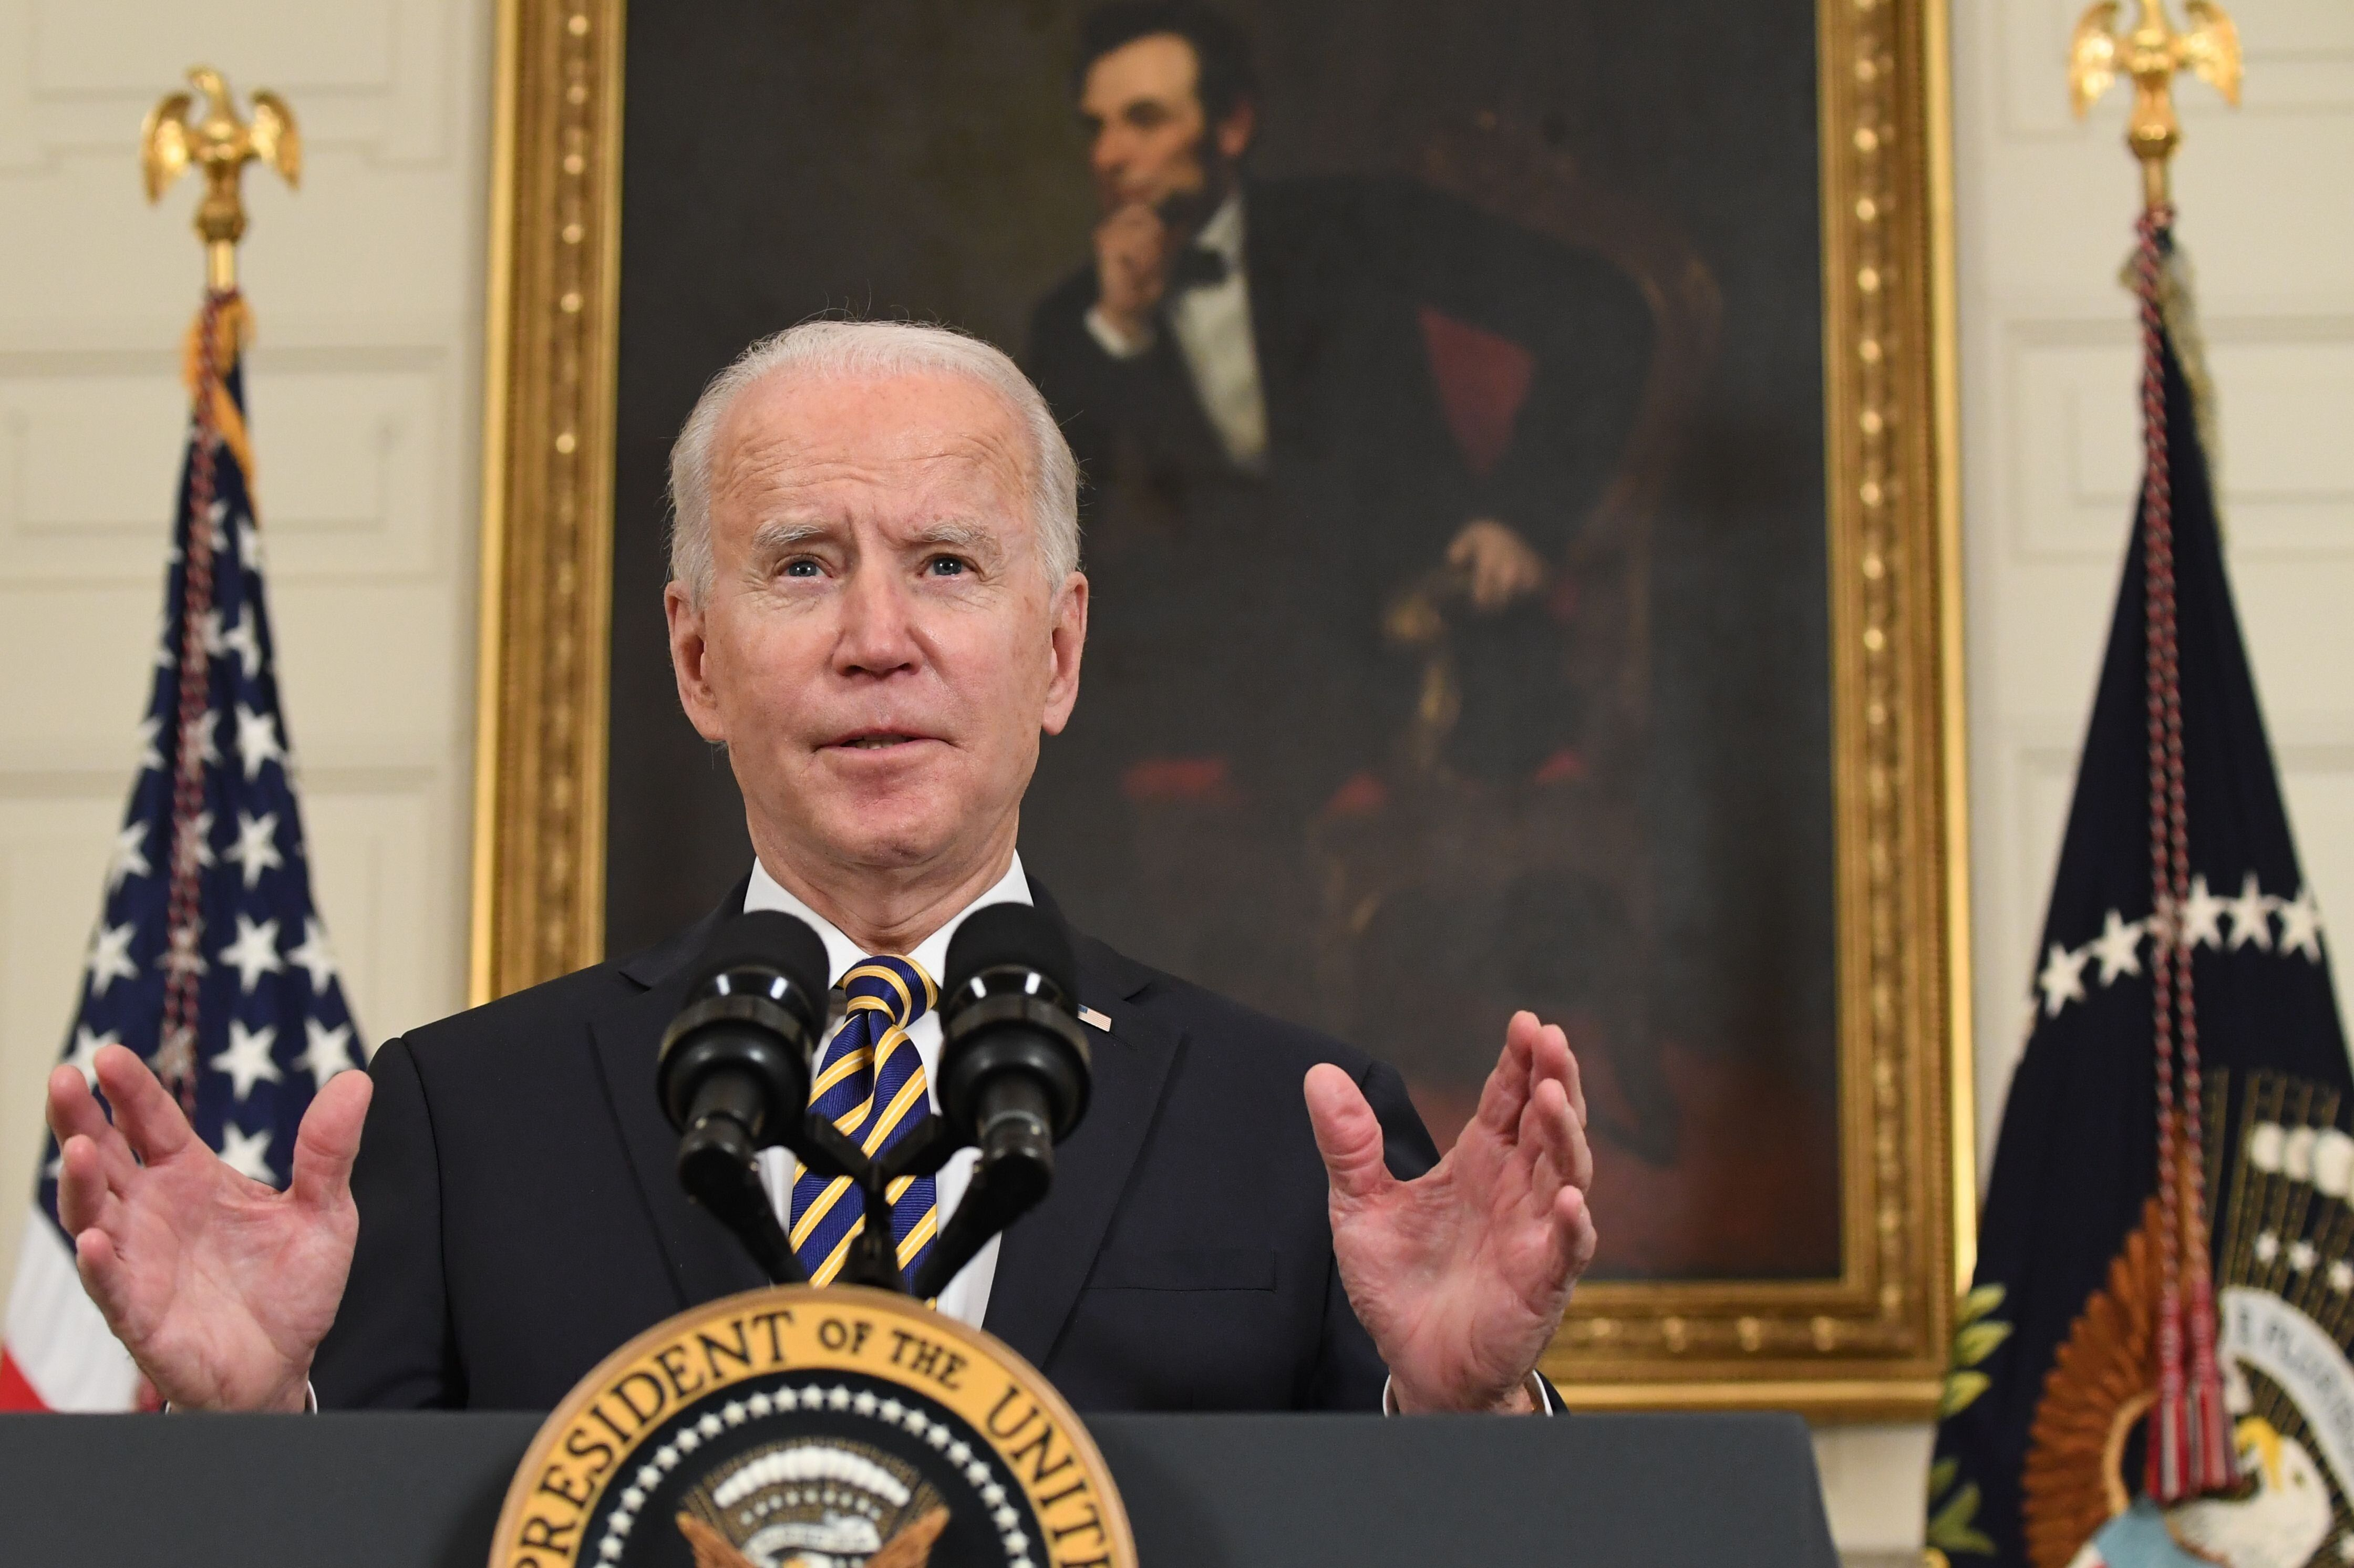 US President Joe Biden speaks before signing an executive order on securing critical supply chains on Feb. 24.